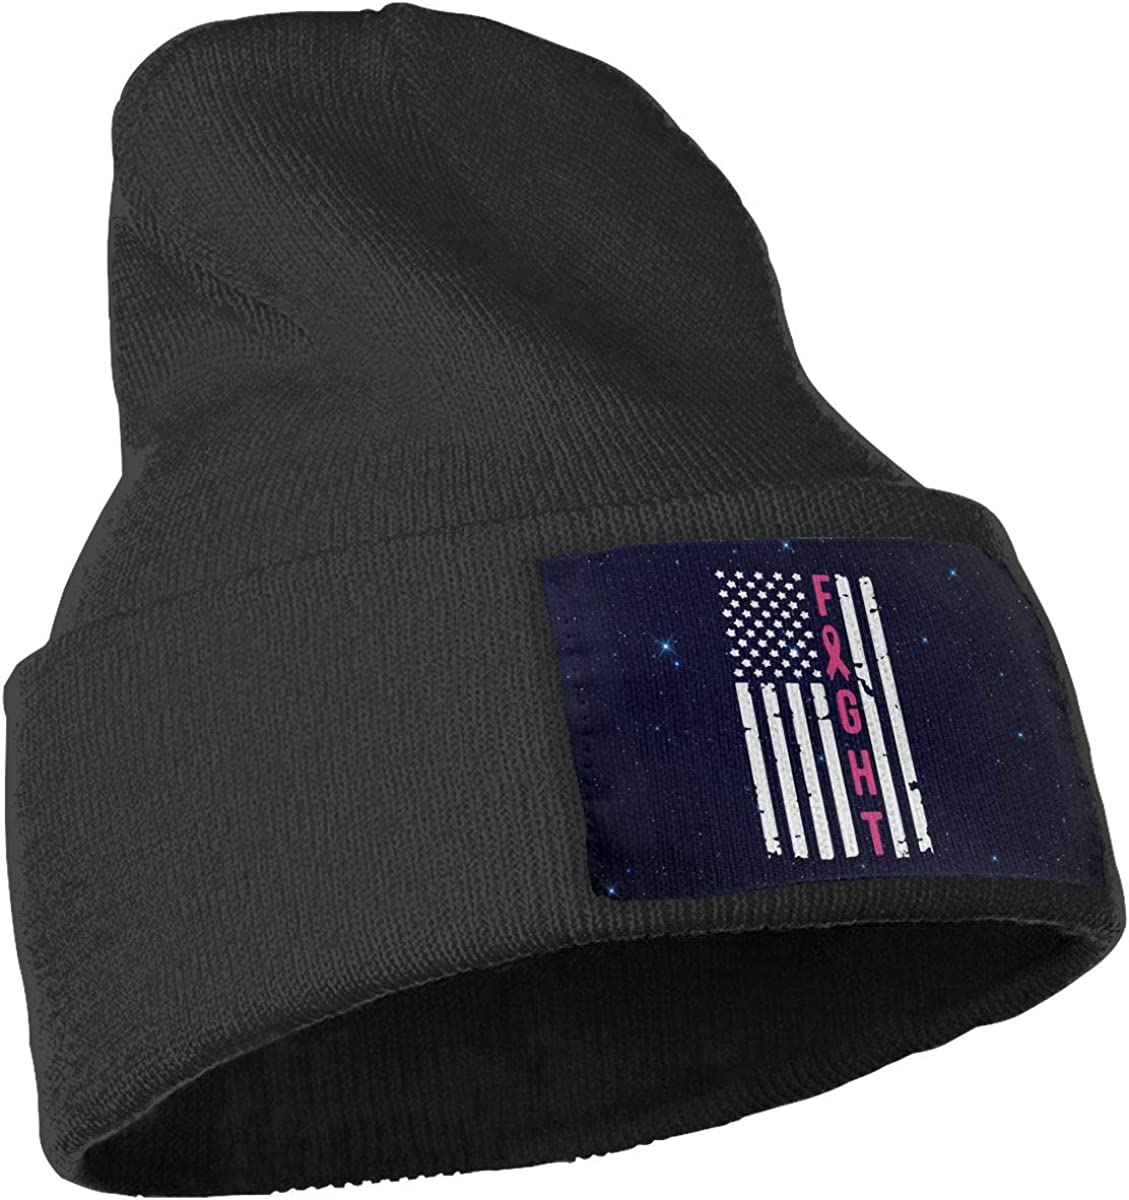 COLLJL-8 Unisex Breast Cancer Awareness Flag Outdoor Warm Knit Beanies Hat Soft Winter Skull Caps